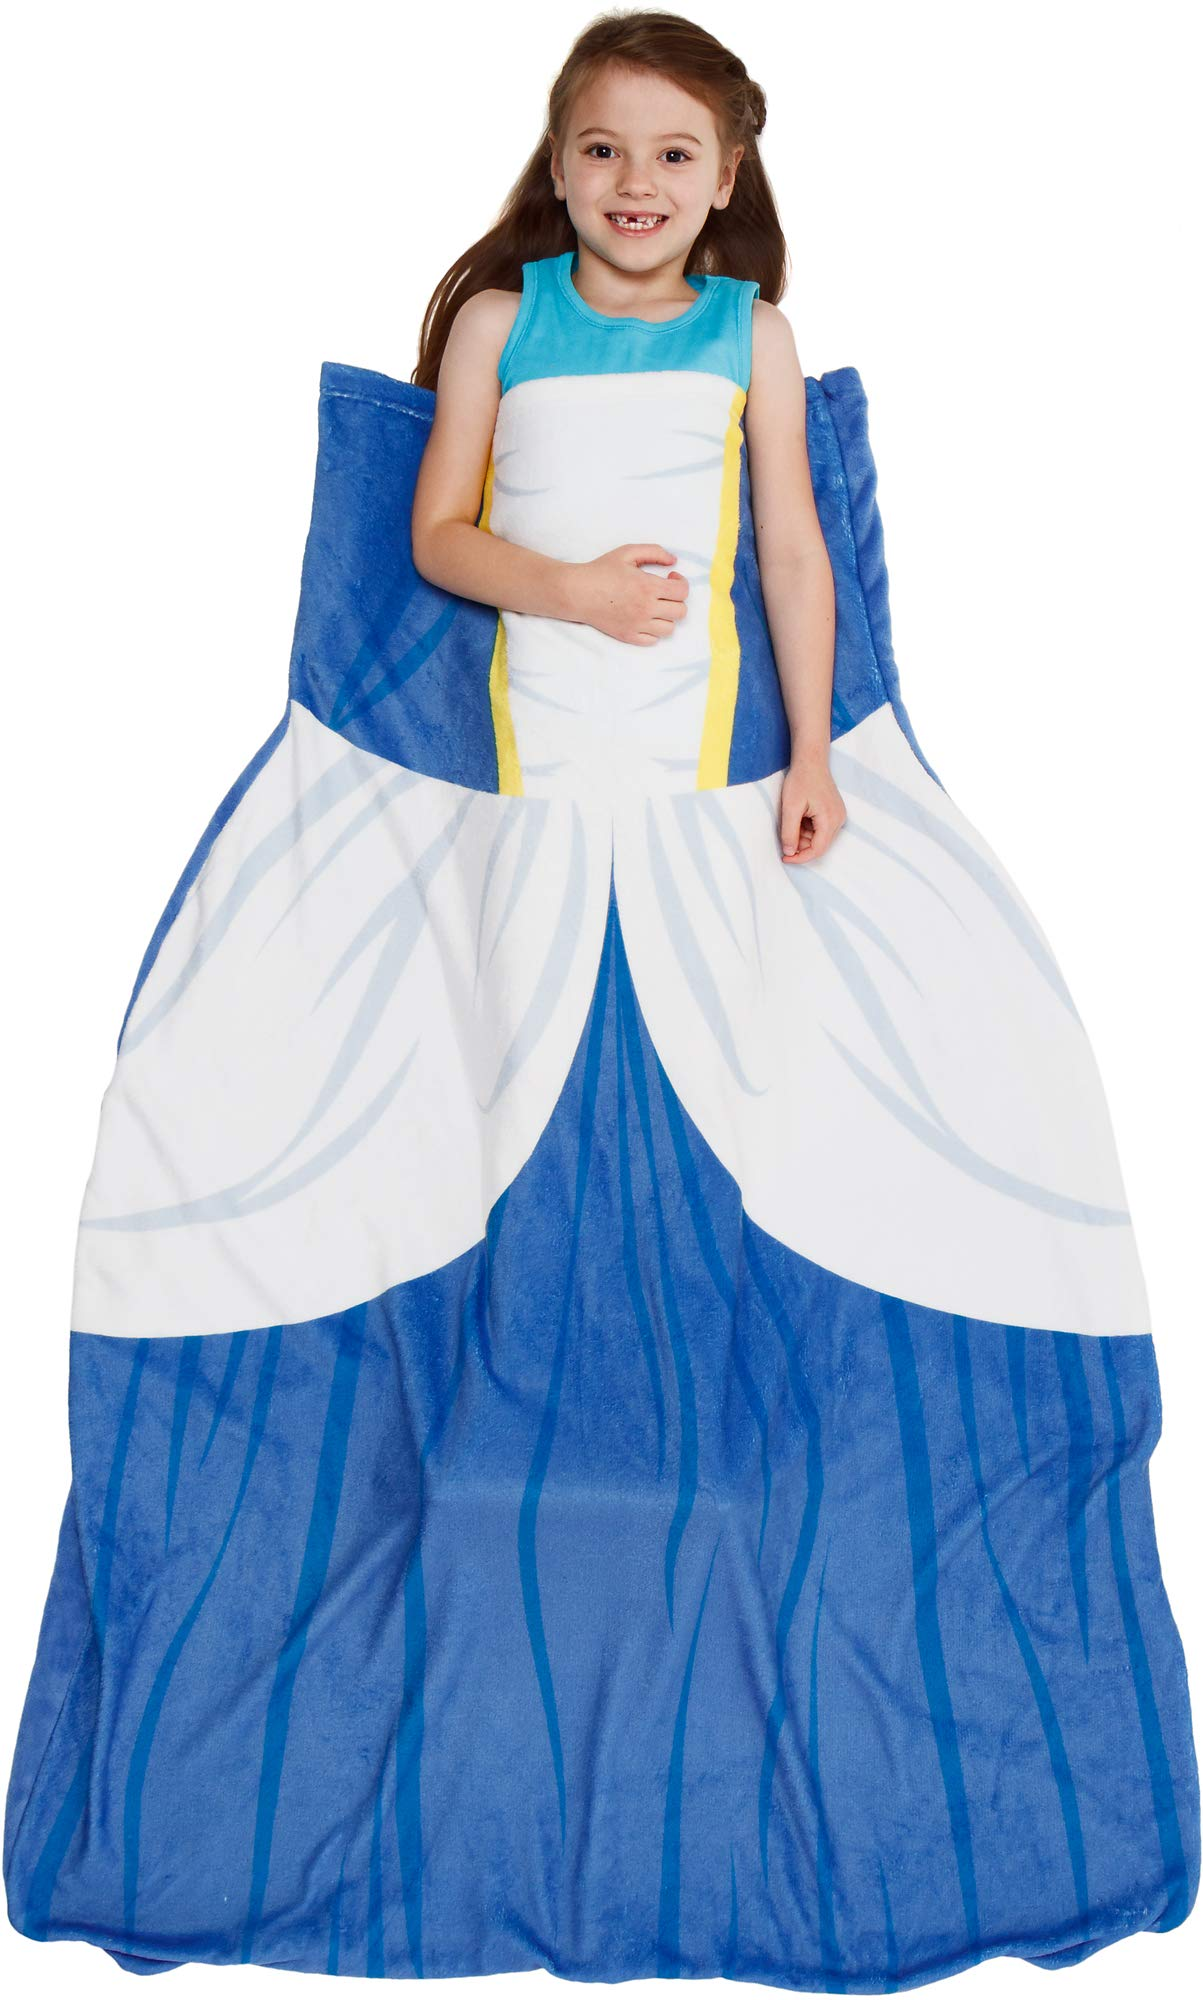 Silver Lilly Princess Dress Blanket - Girl's Dress Up Costume Fleece Sleeping Bag Blanket (Blue) by Silver Lilly